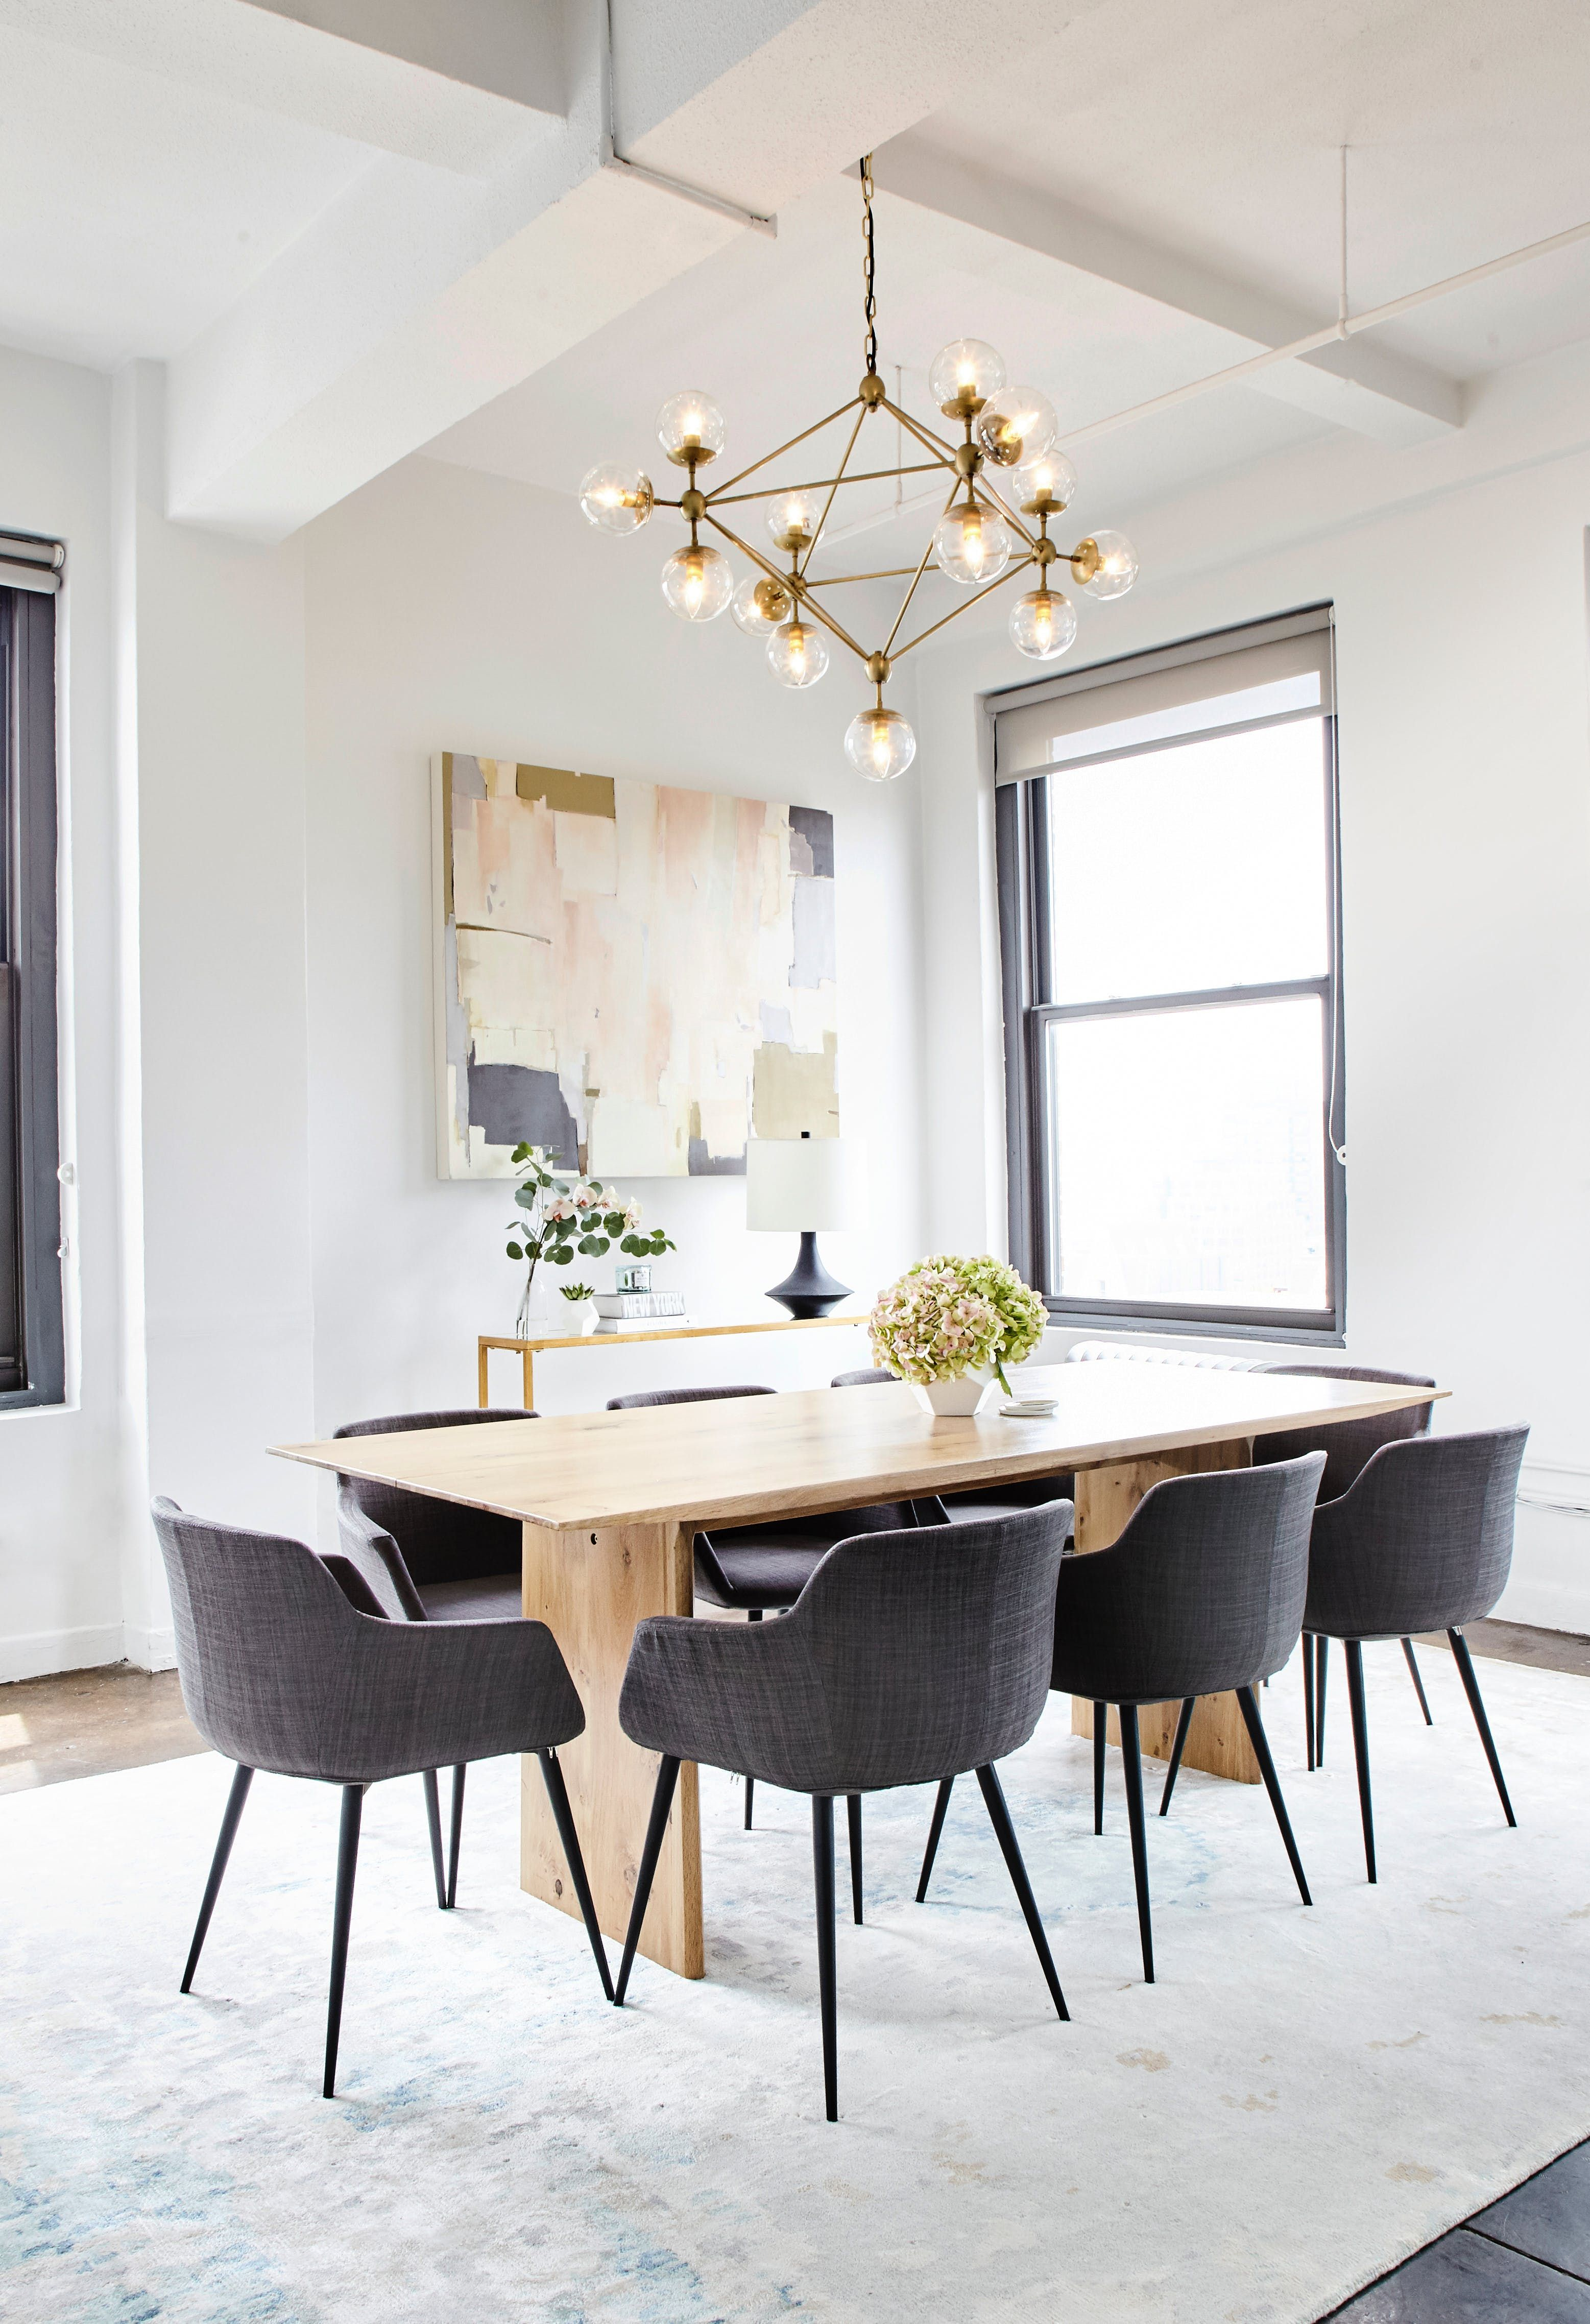 Tour The Entire Kode With Klossy Offices - Architectural Digest,